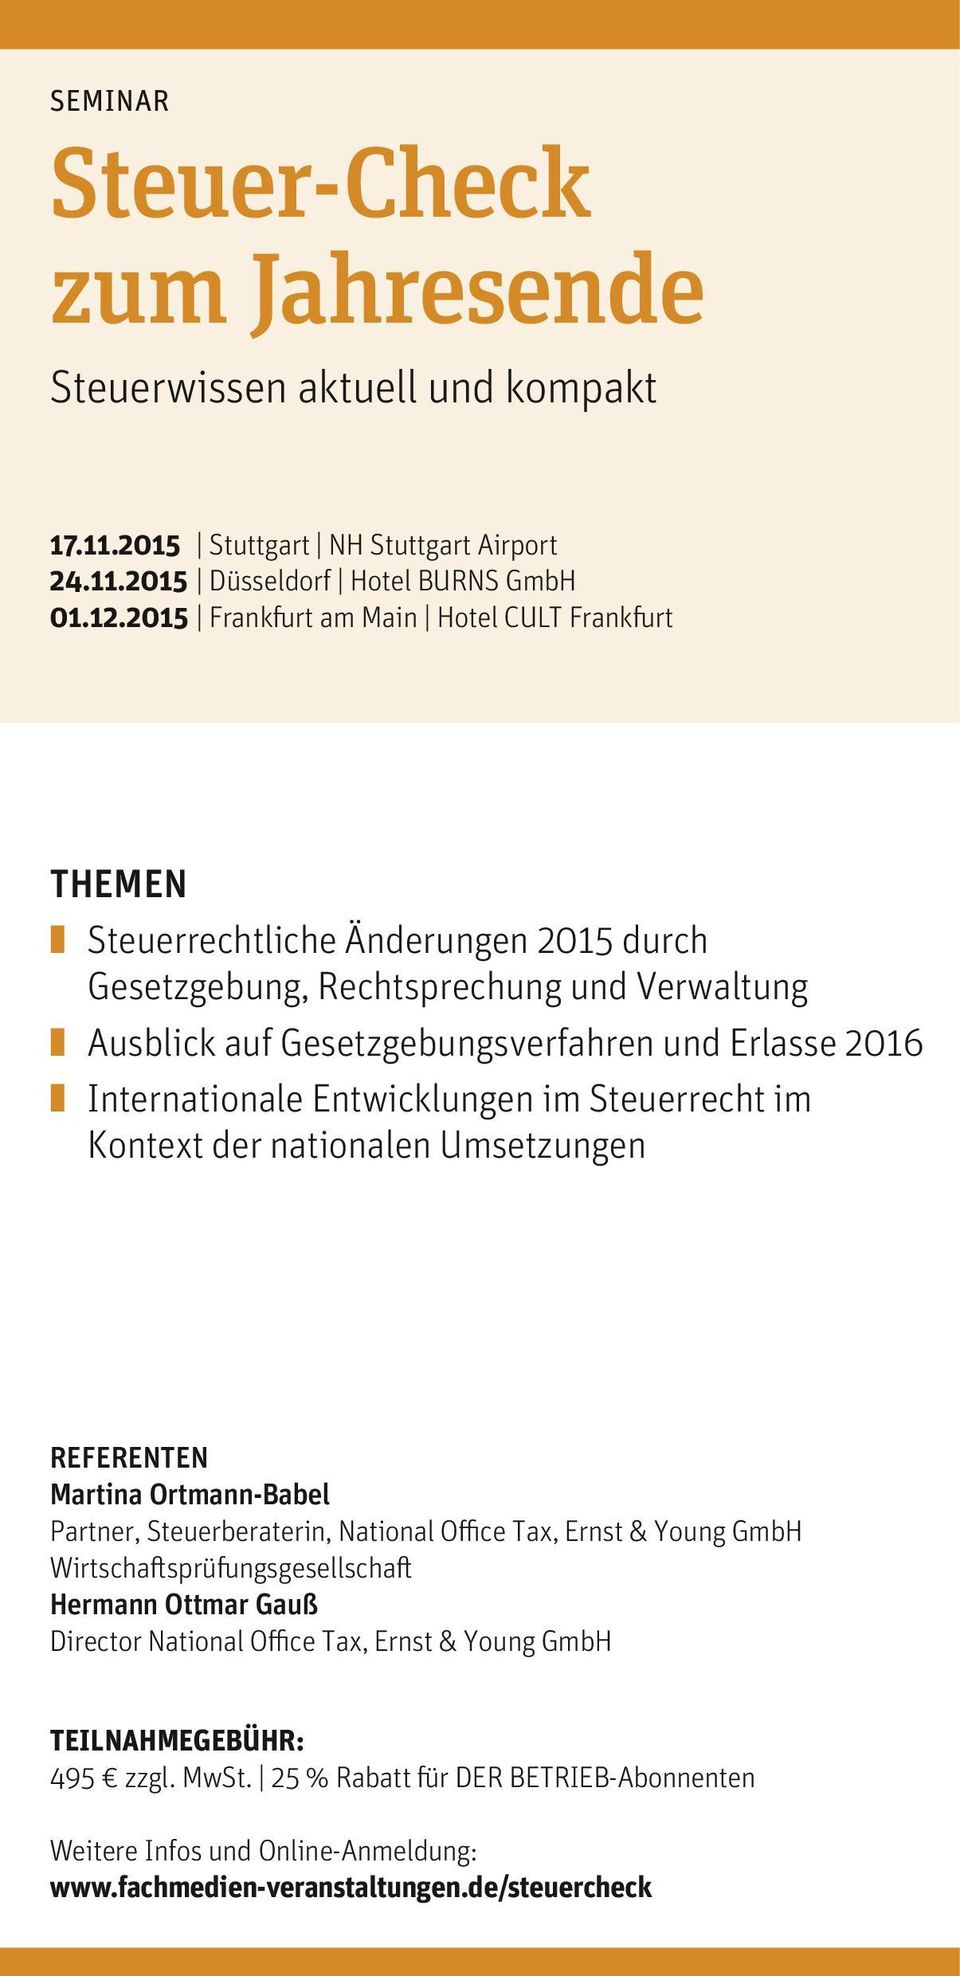 Erlasse 2016 Internationale Entwicklungen im Steuerrecht im Kontext der nationalen Umsetzungen REFERENTEN Martina Ortmann-Babel Partner, Steuerberaterin, National Office Tax, Ernst